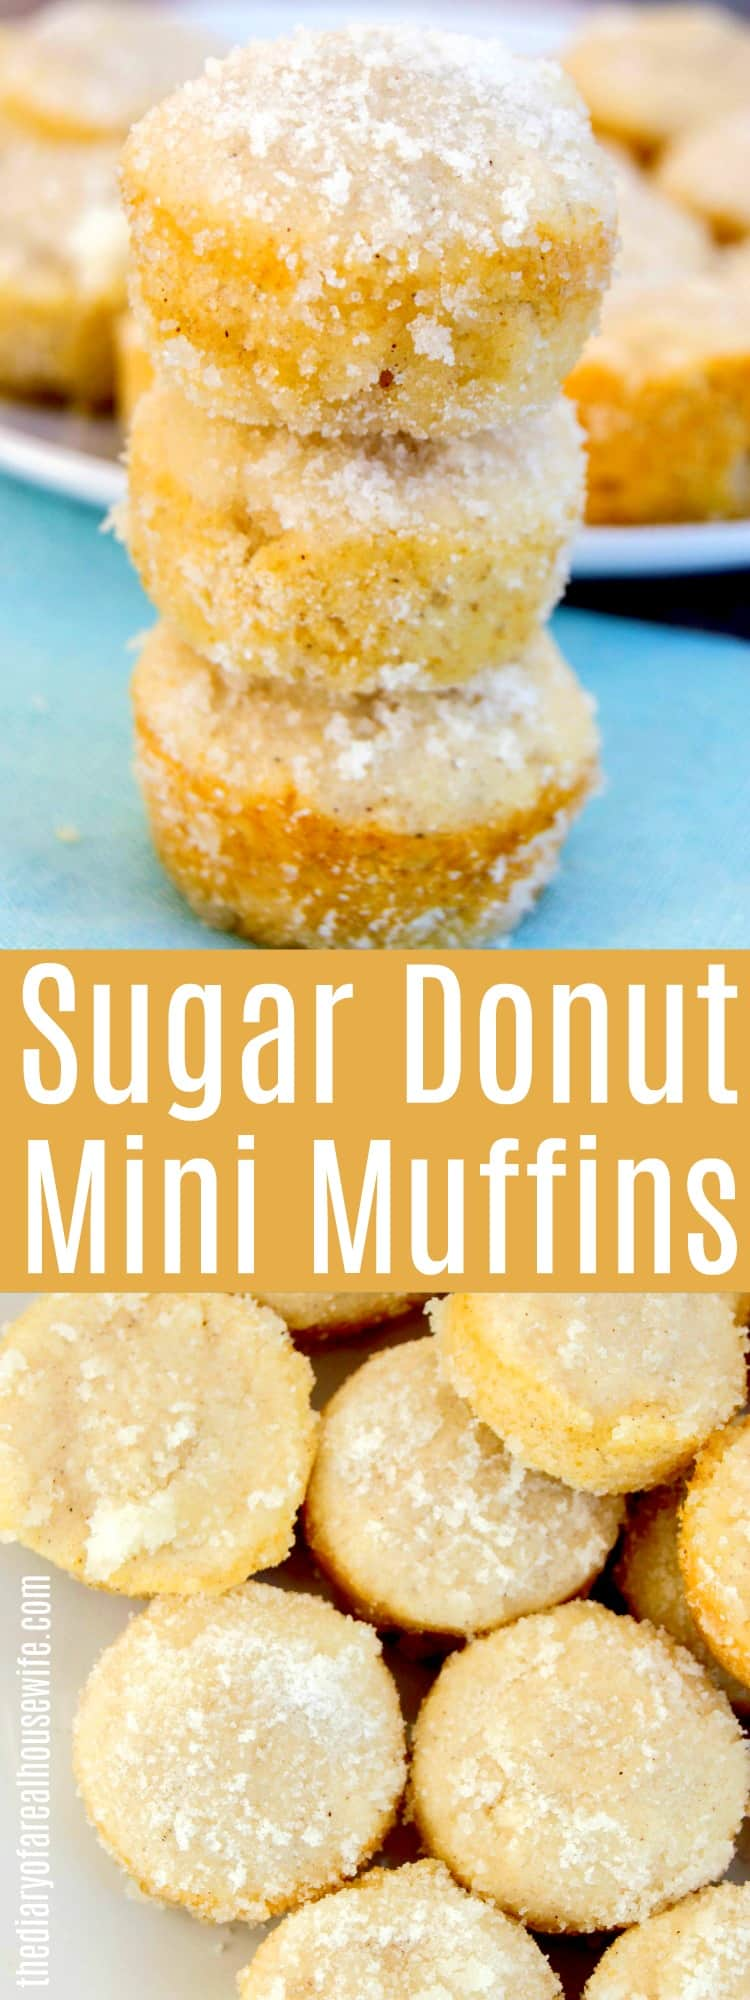 Sugar Donut Mini Muffins